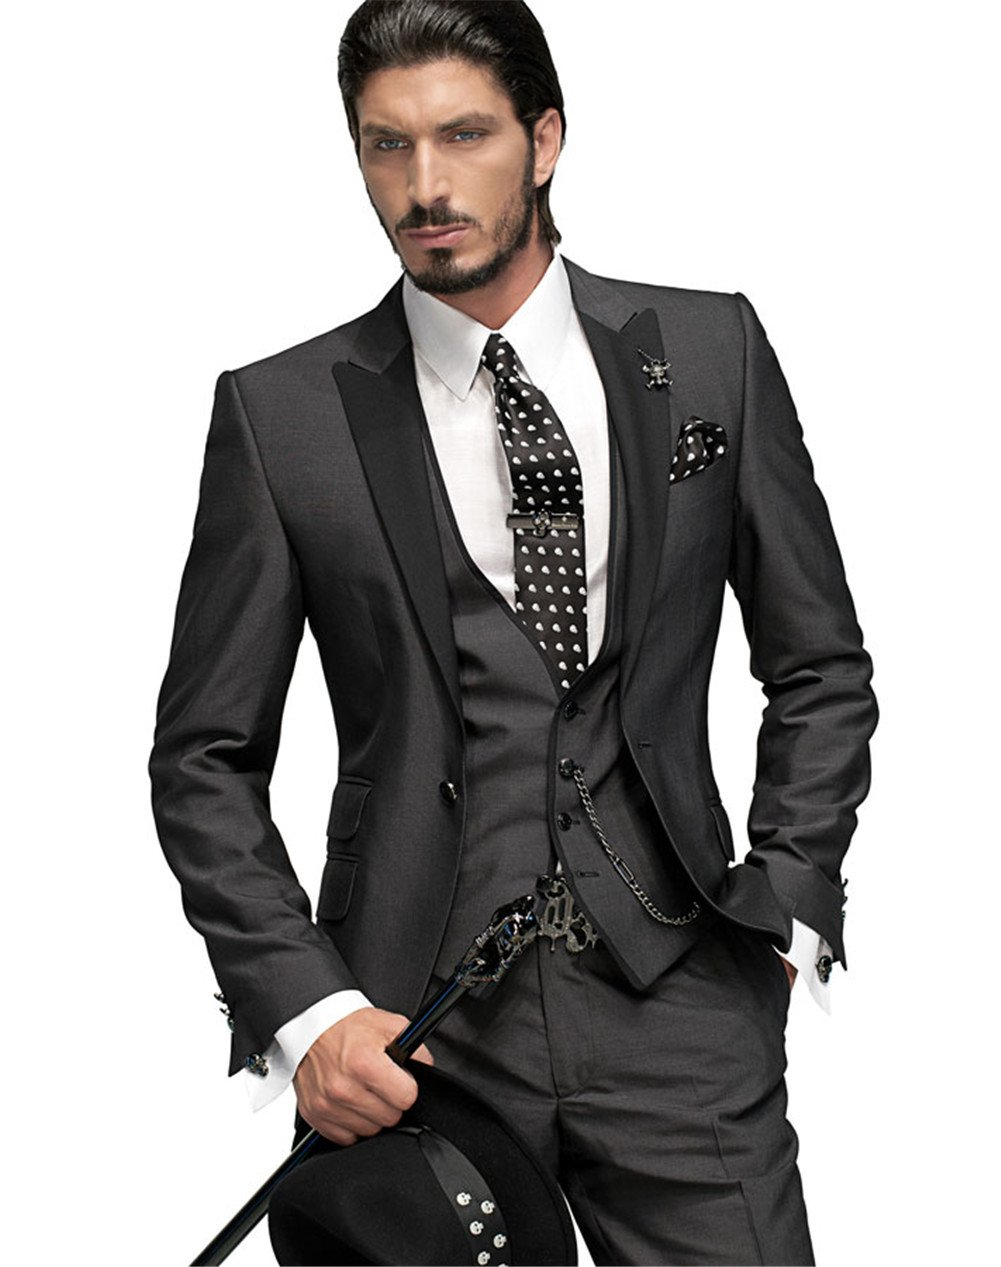 Manweisi Men's One Button Groom Tuxedos Wedding Suit (M)